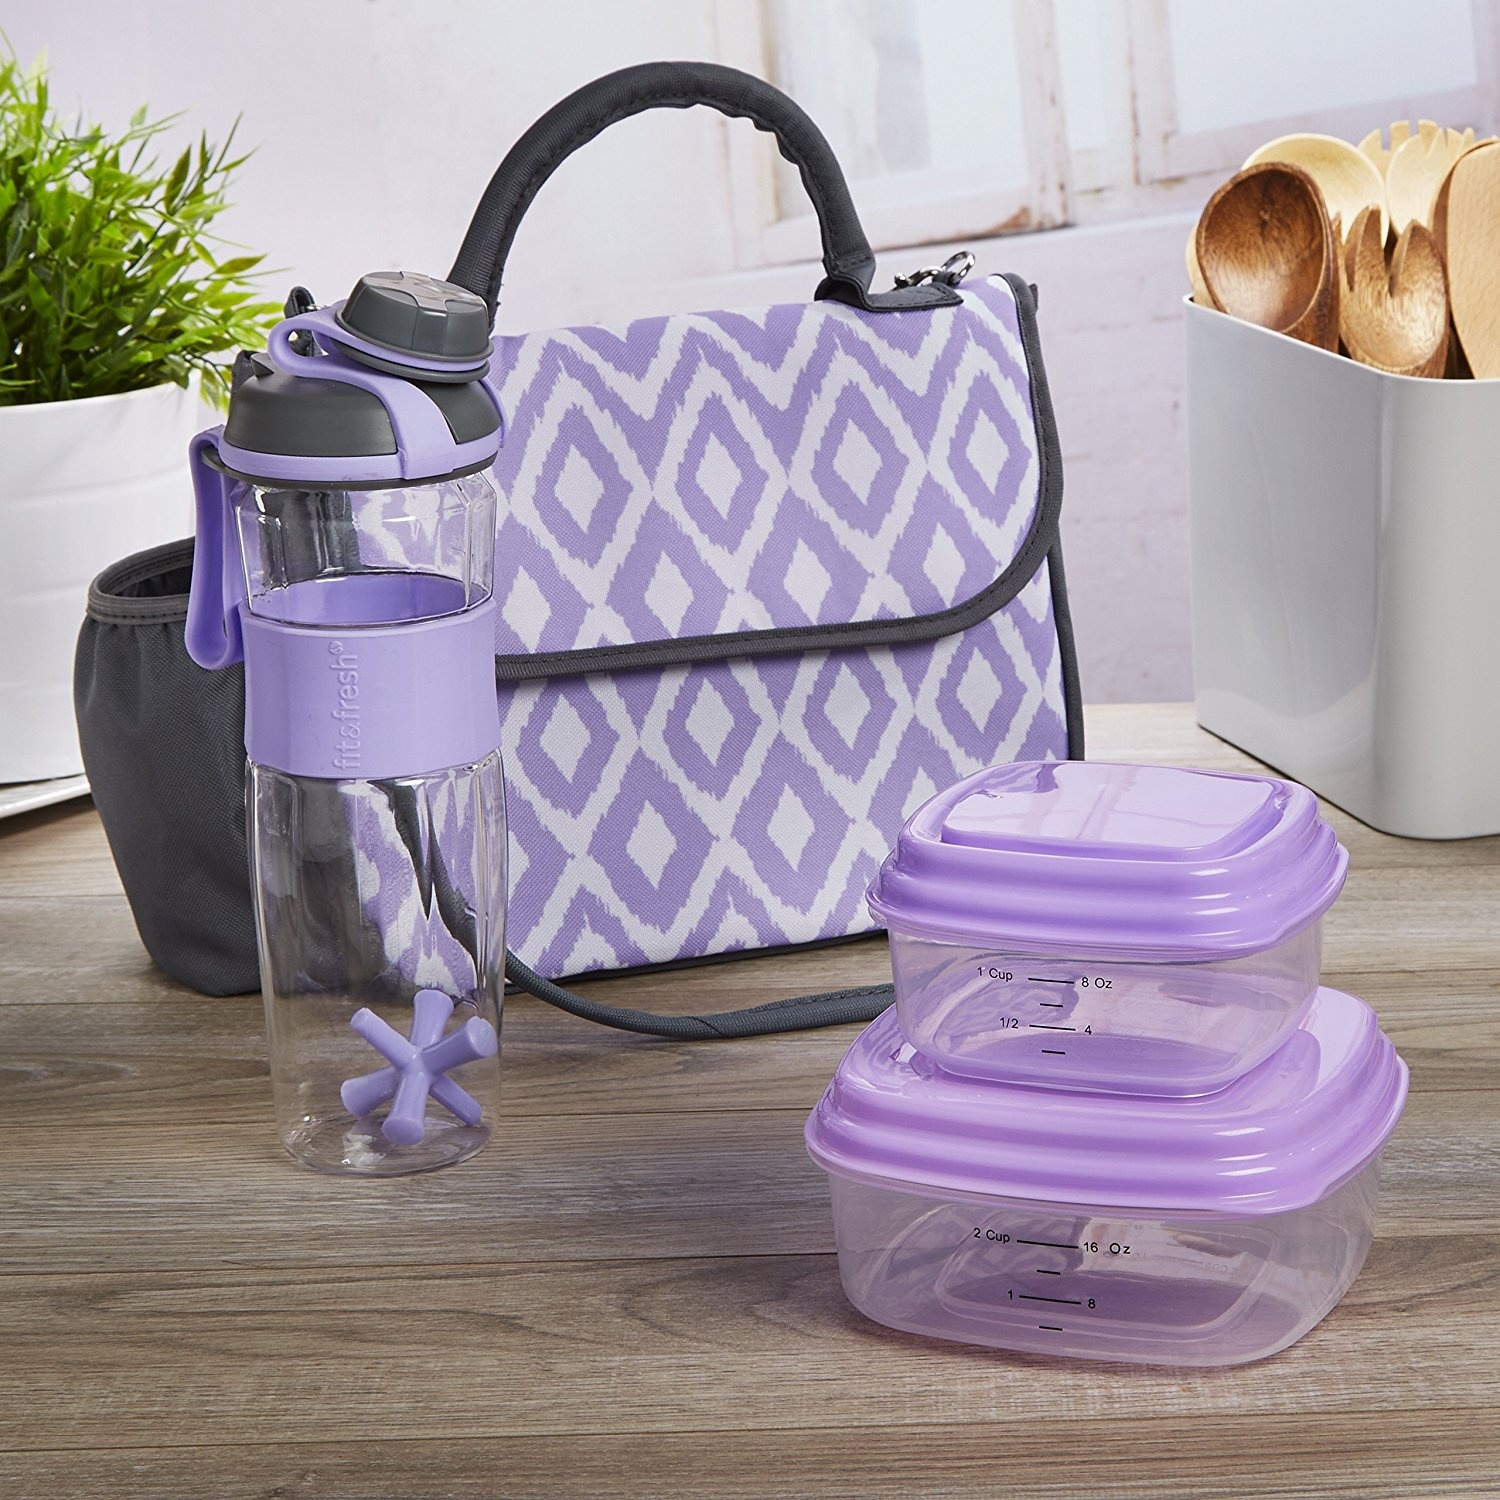 0a6100793ec Fit & Fresh Lovelock Insulated Lunch Bag Kit for Women with Reusable  Container Set and Shaker Bottle, Lavender Painted Diamonds by Fit & Fresh -  Shop Online ...